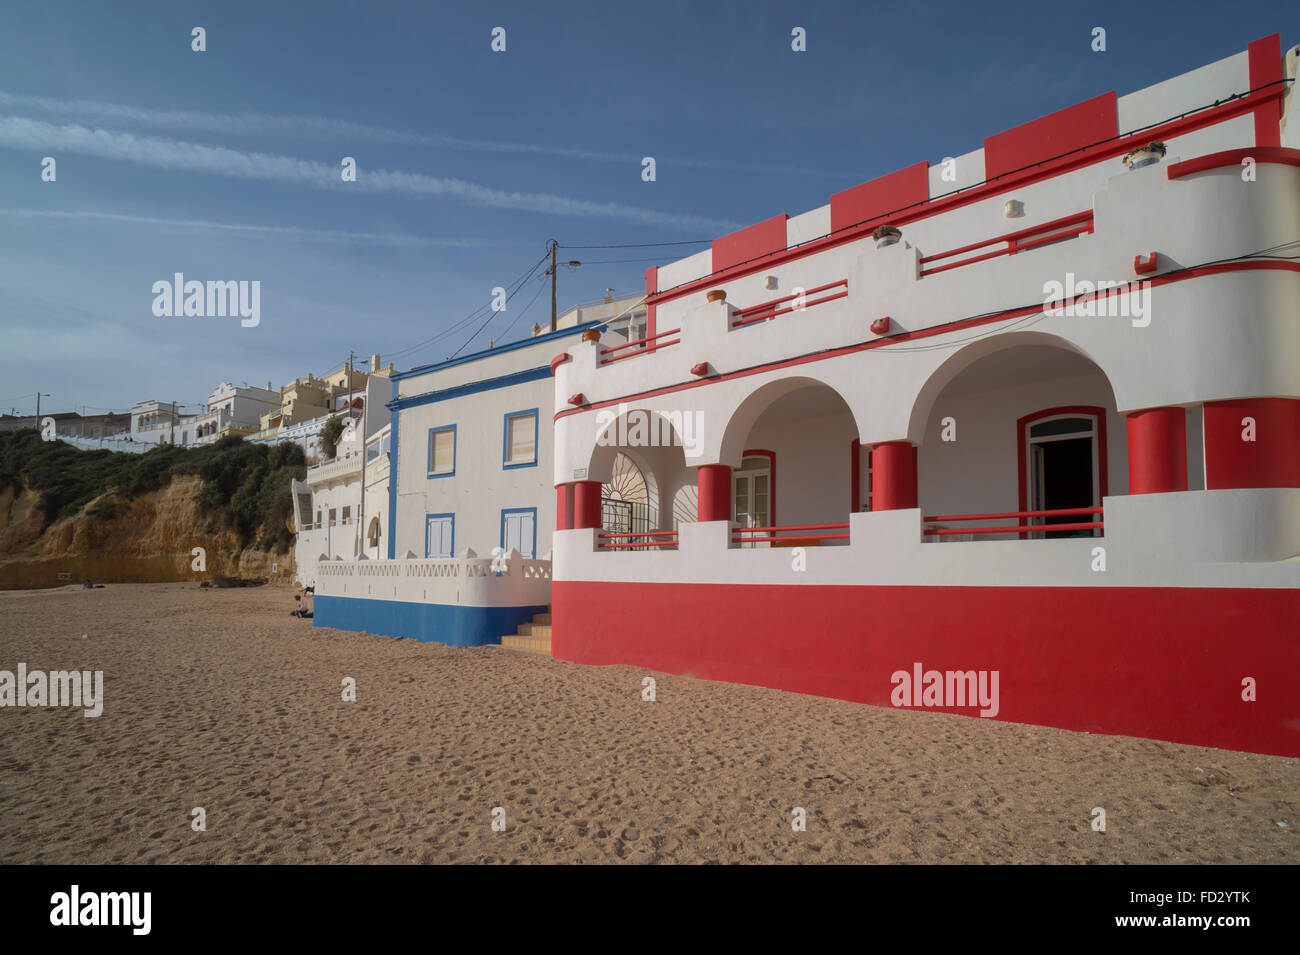 Houses on the beach at Carvoeiro in the Algarve region of Portugal. Stock Photo